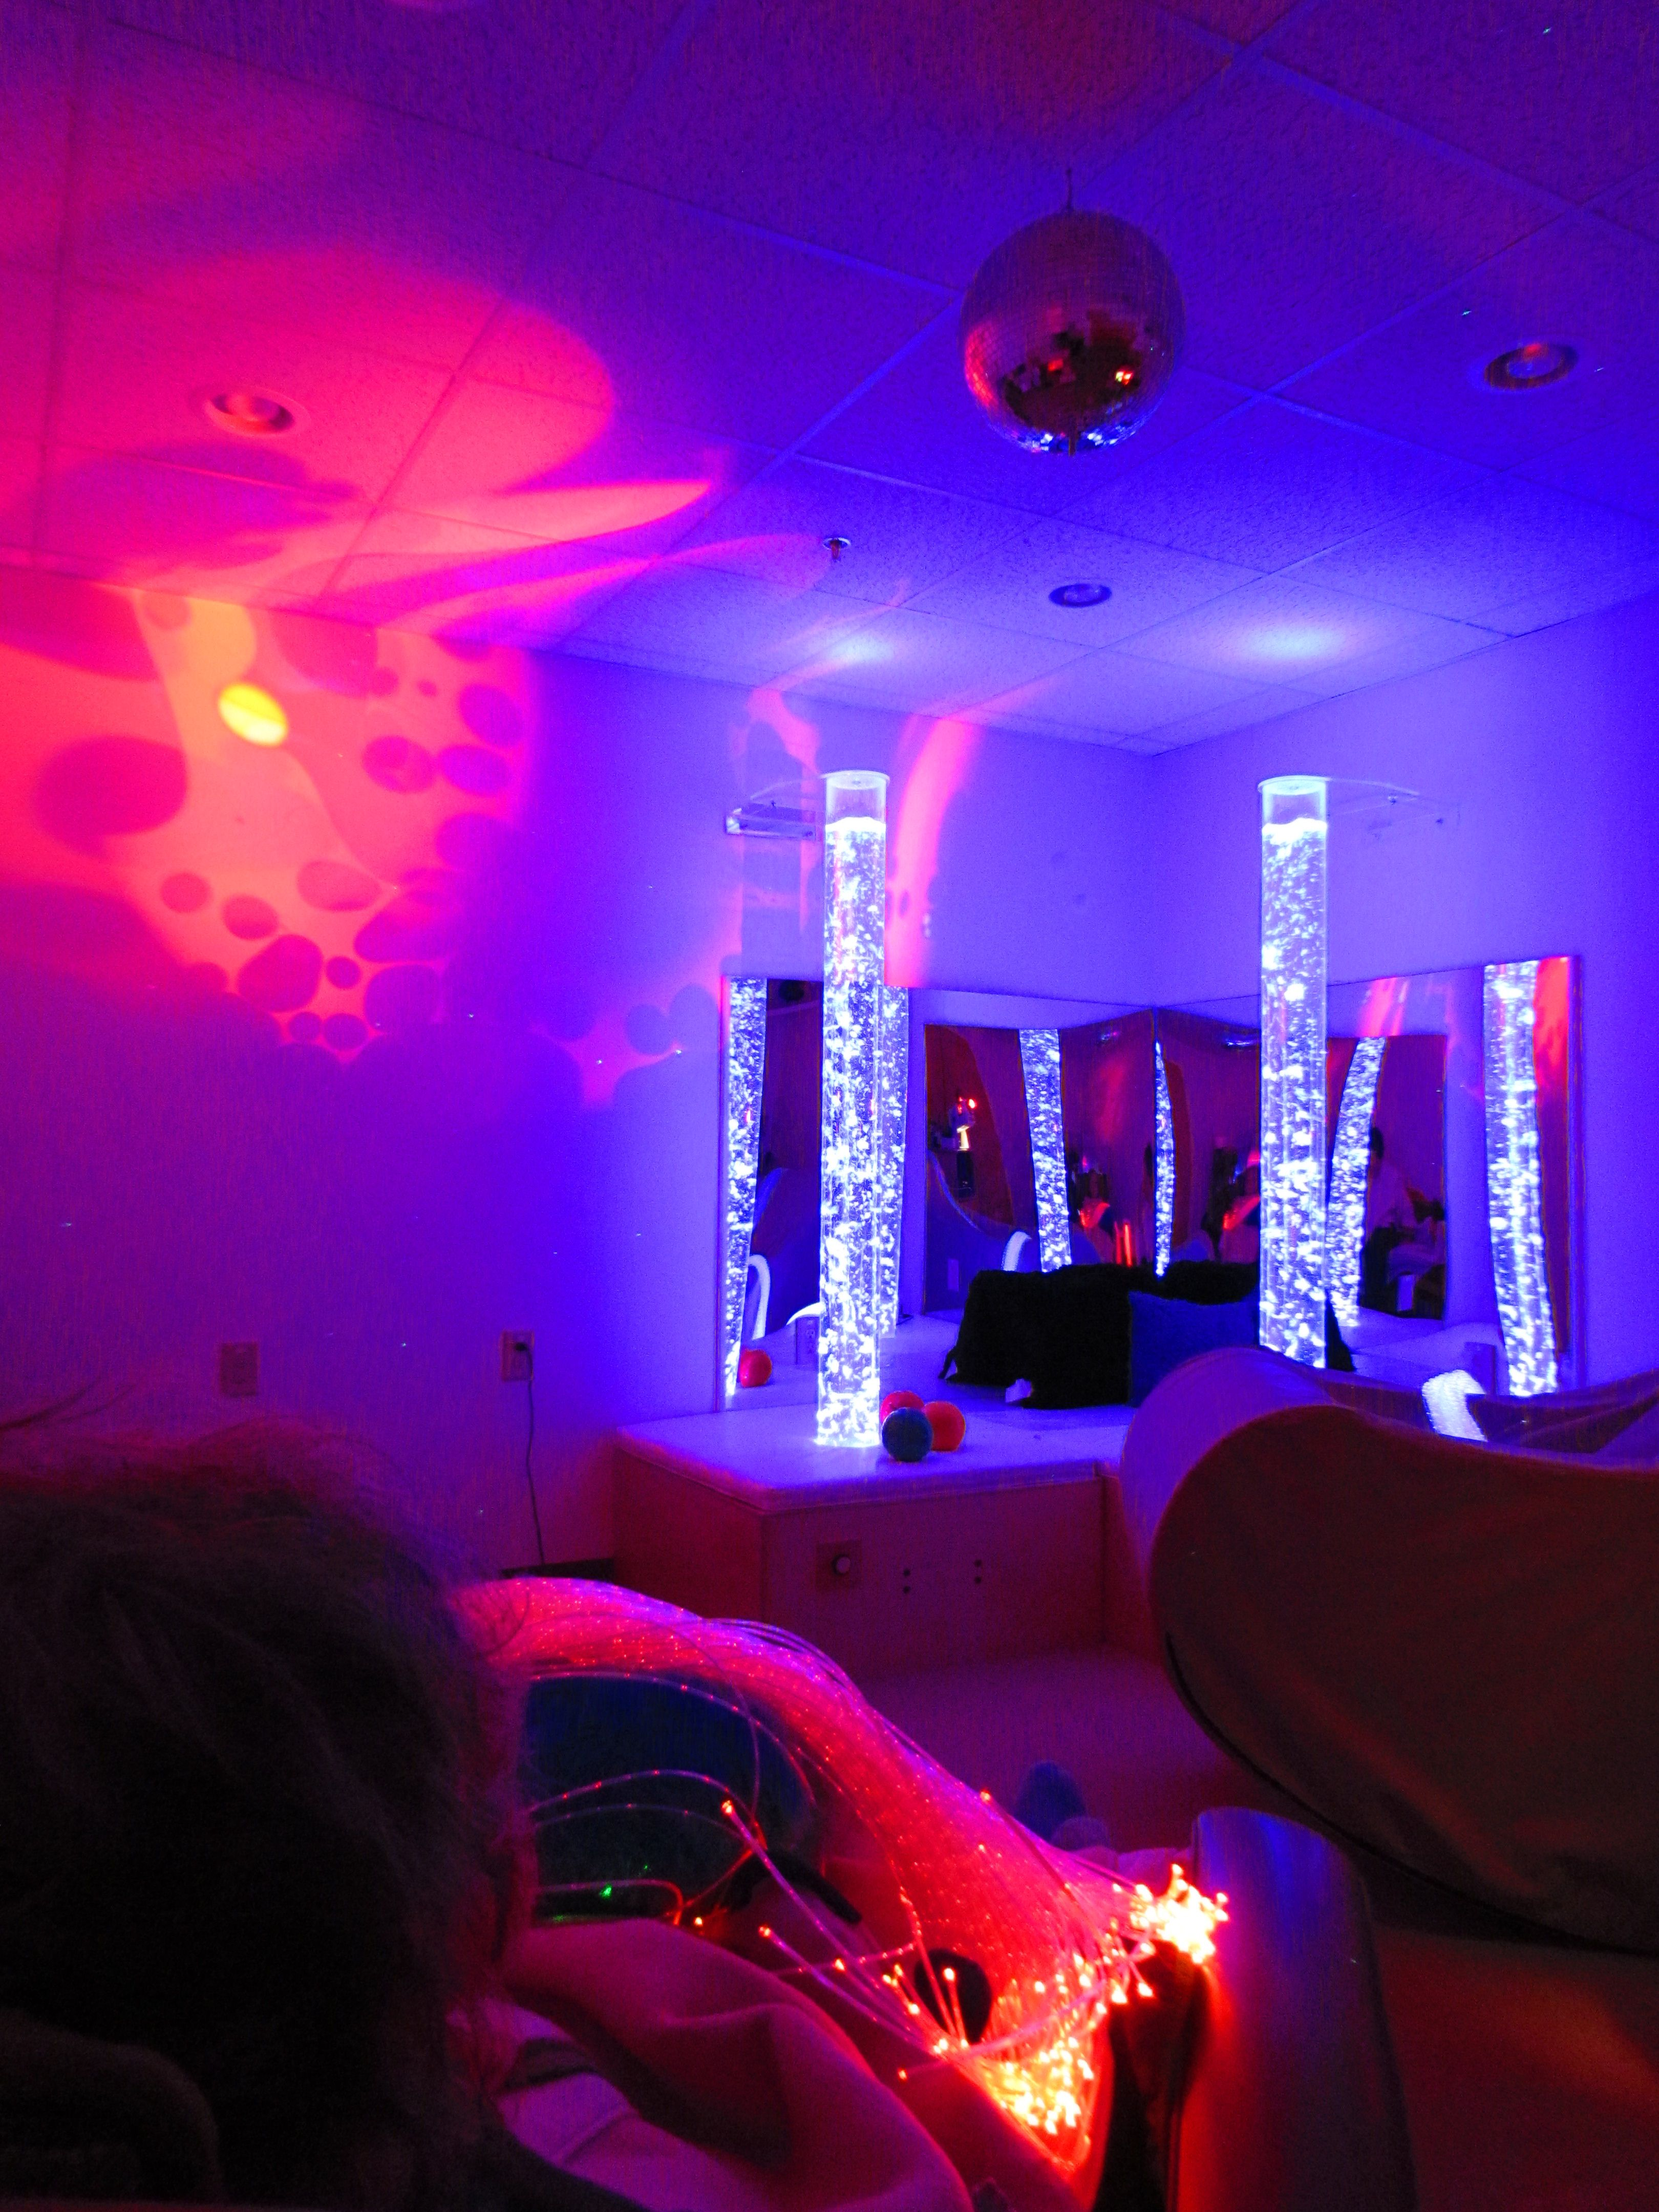 Salle De Bain Snoezelen ~ i think all rooms should have an element of this multi sensory room